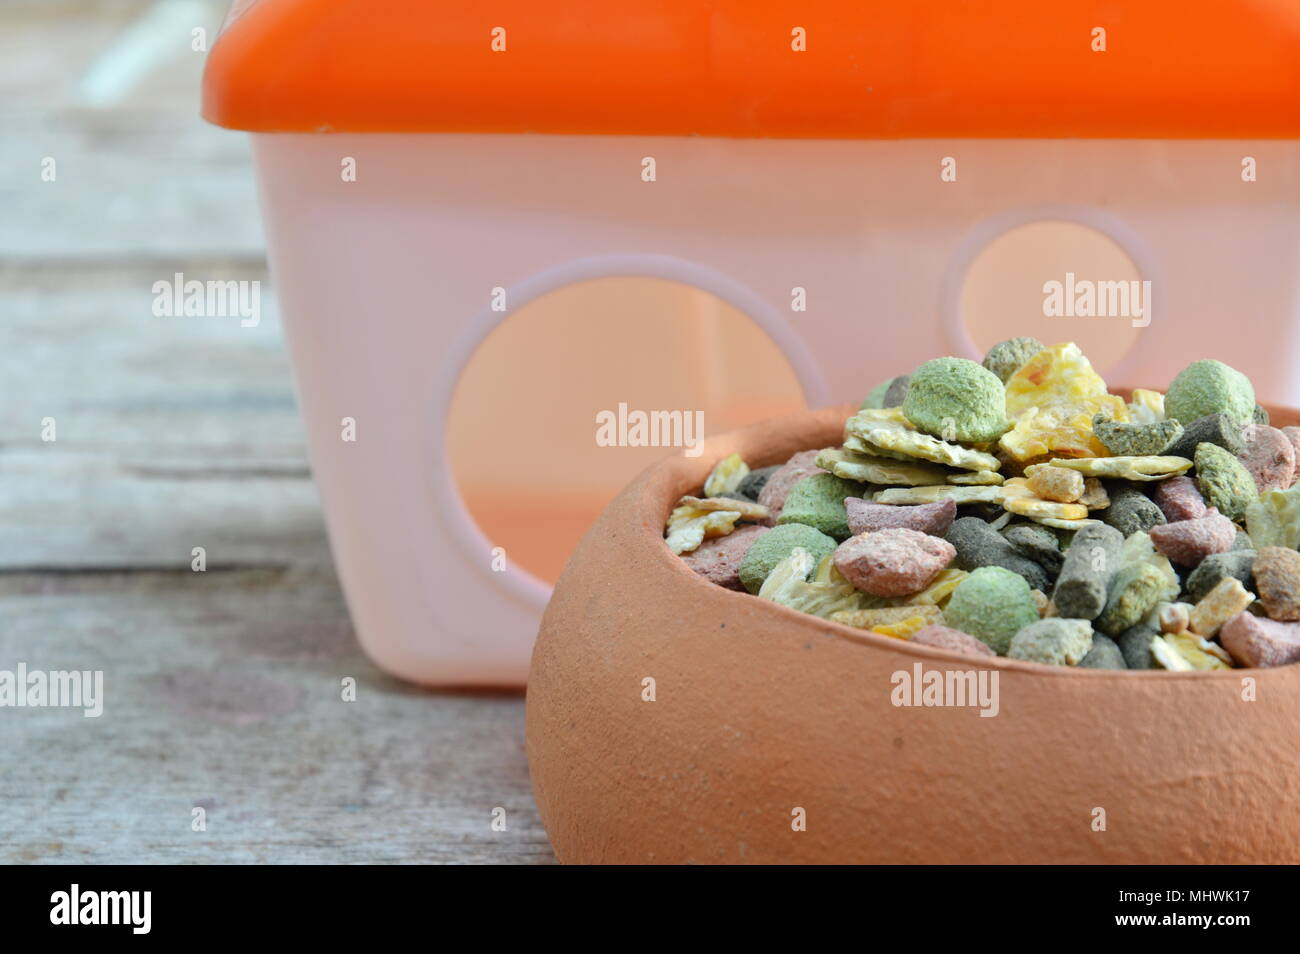 Hamster Food Stock Photos & Hamster Food Stock Images - Alamy